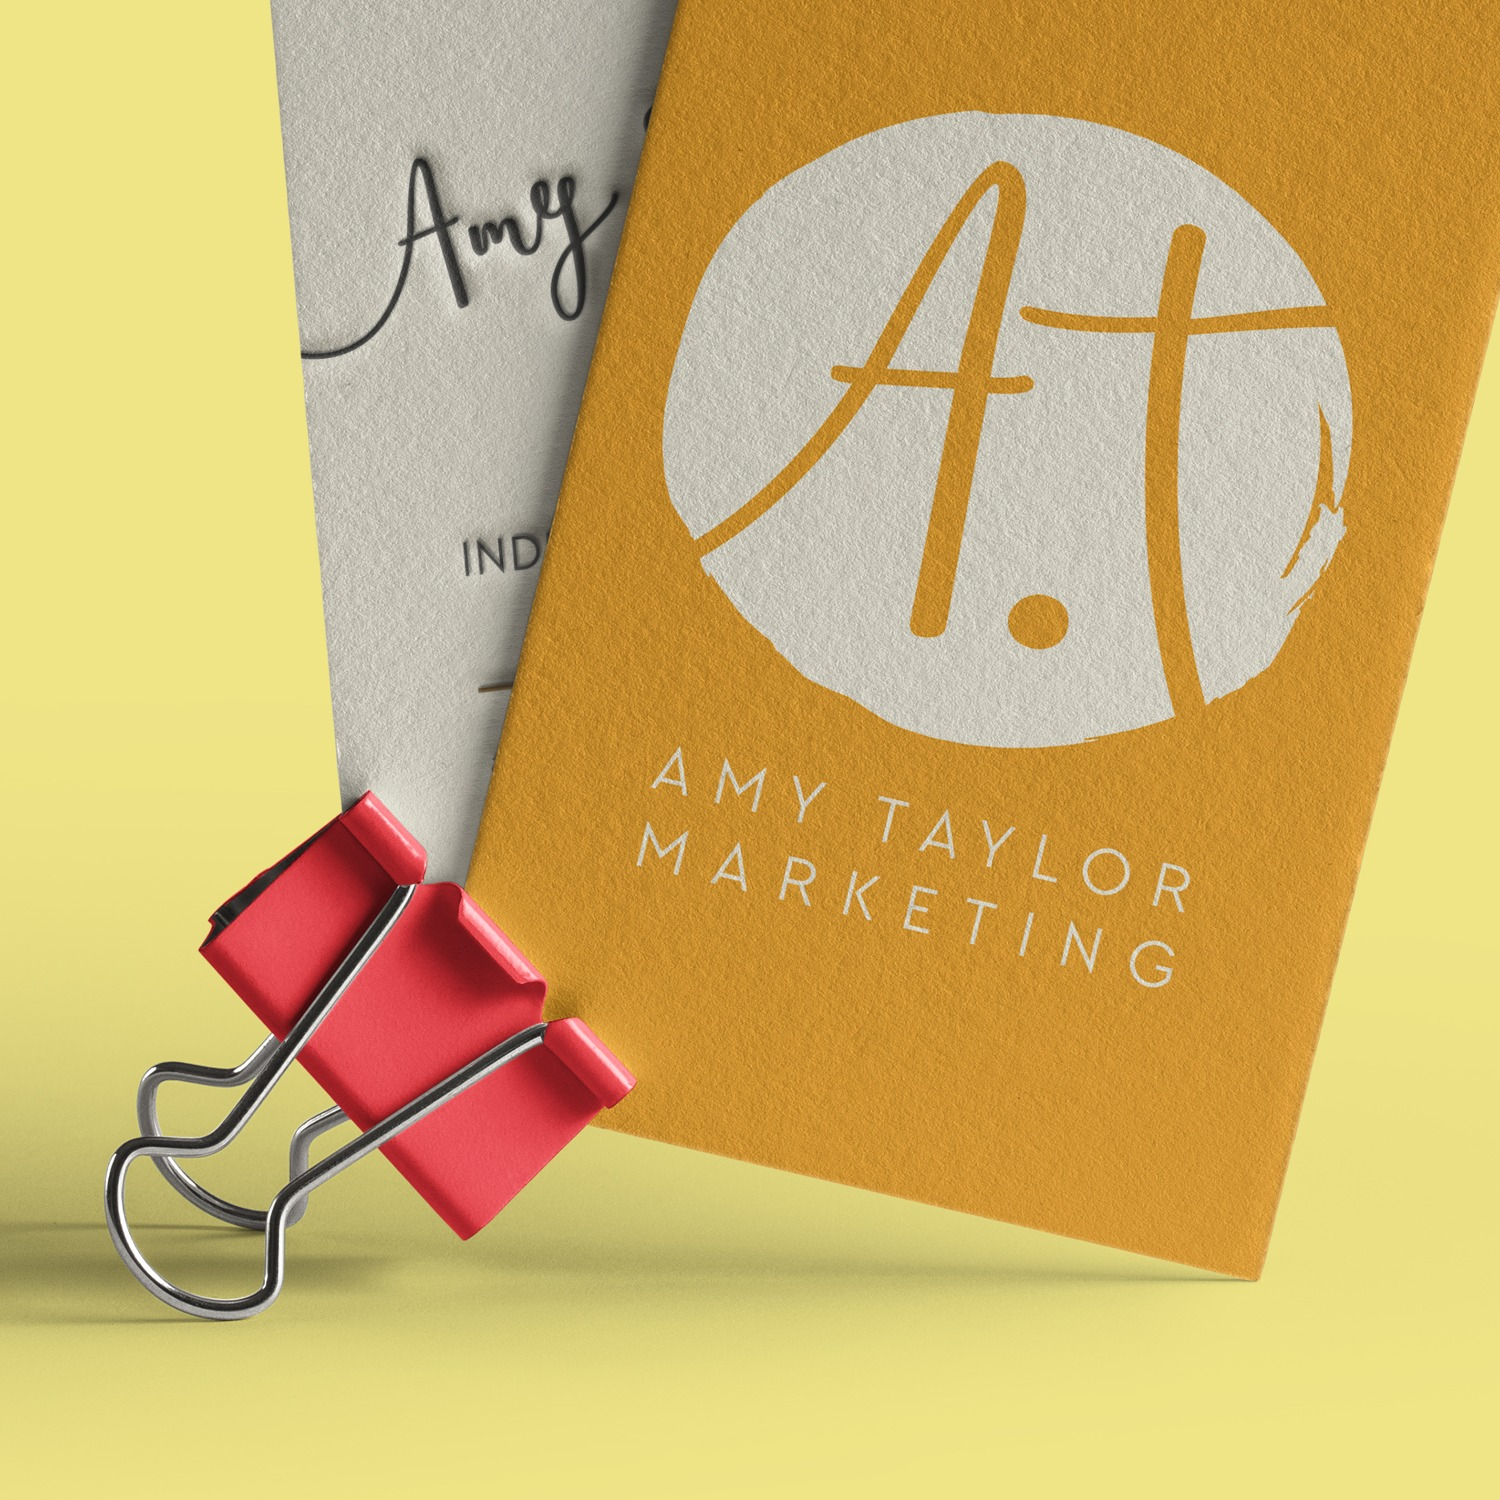 AMY TAYLOR MARKETING